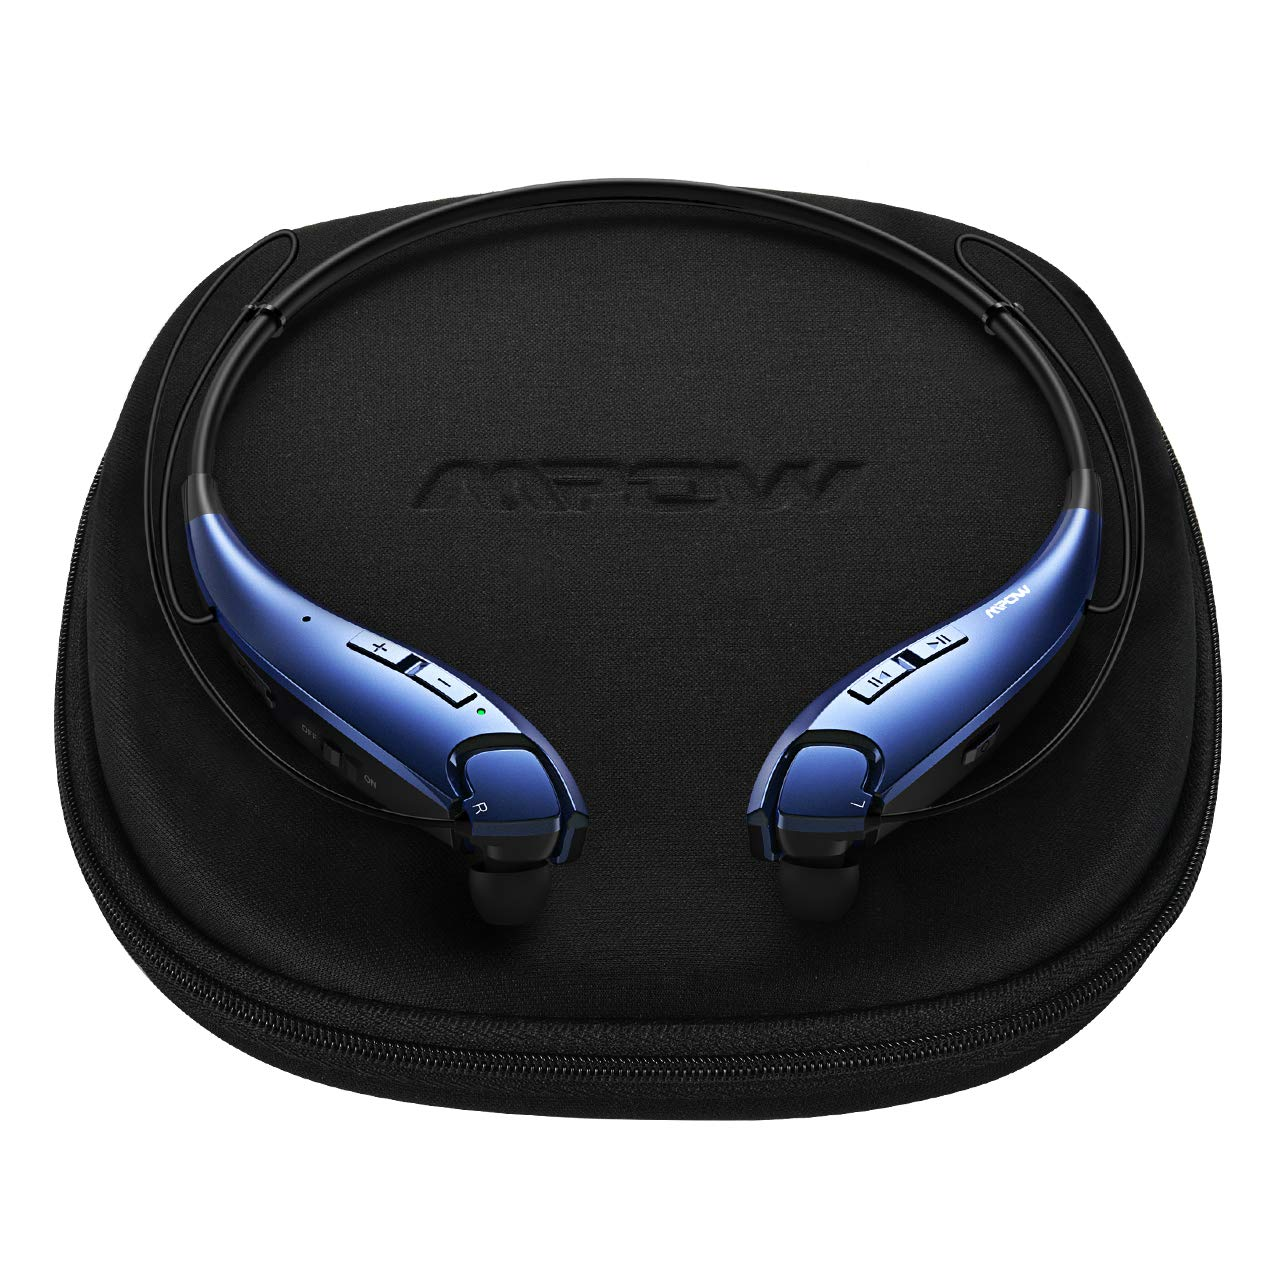 Mpow Jaws Gen-4 Bluetooth Headphones W Portable Case, Lightweight Wireless Neckband Headset W Call Vibrate, 13 Hours Playtime, CVC 6.0 Noise Cancelling Mic, Bluetooth Headset Magnetic, Blue